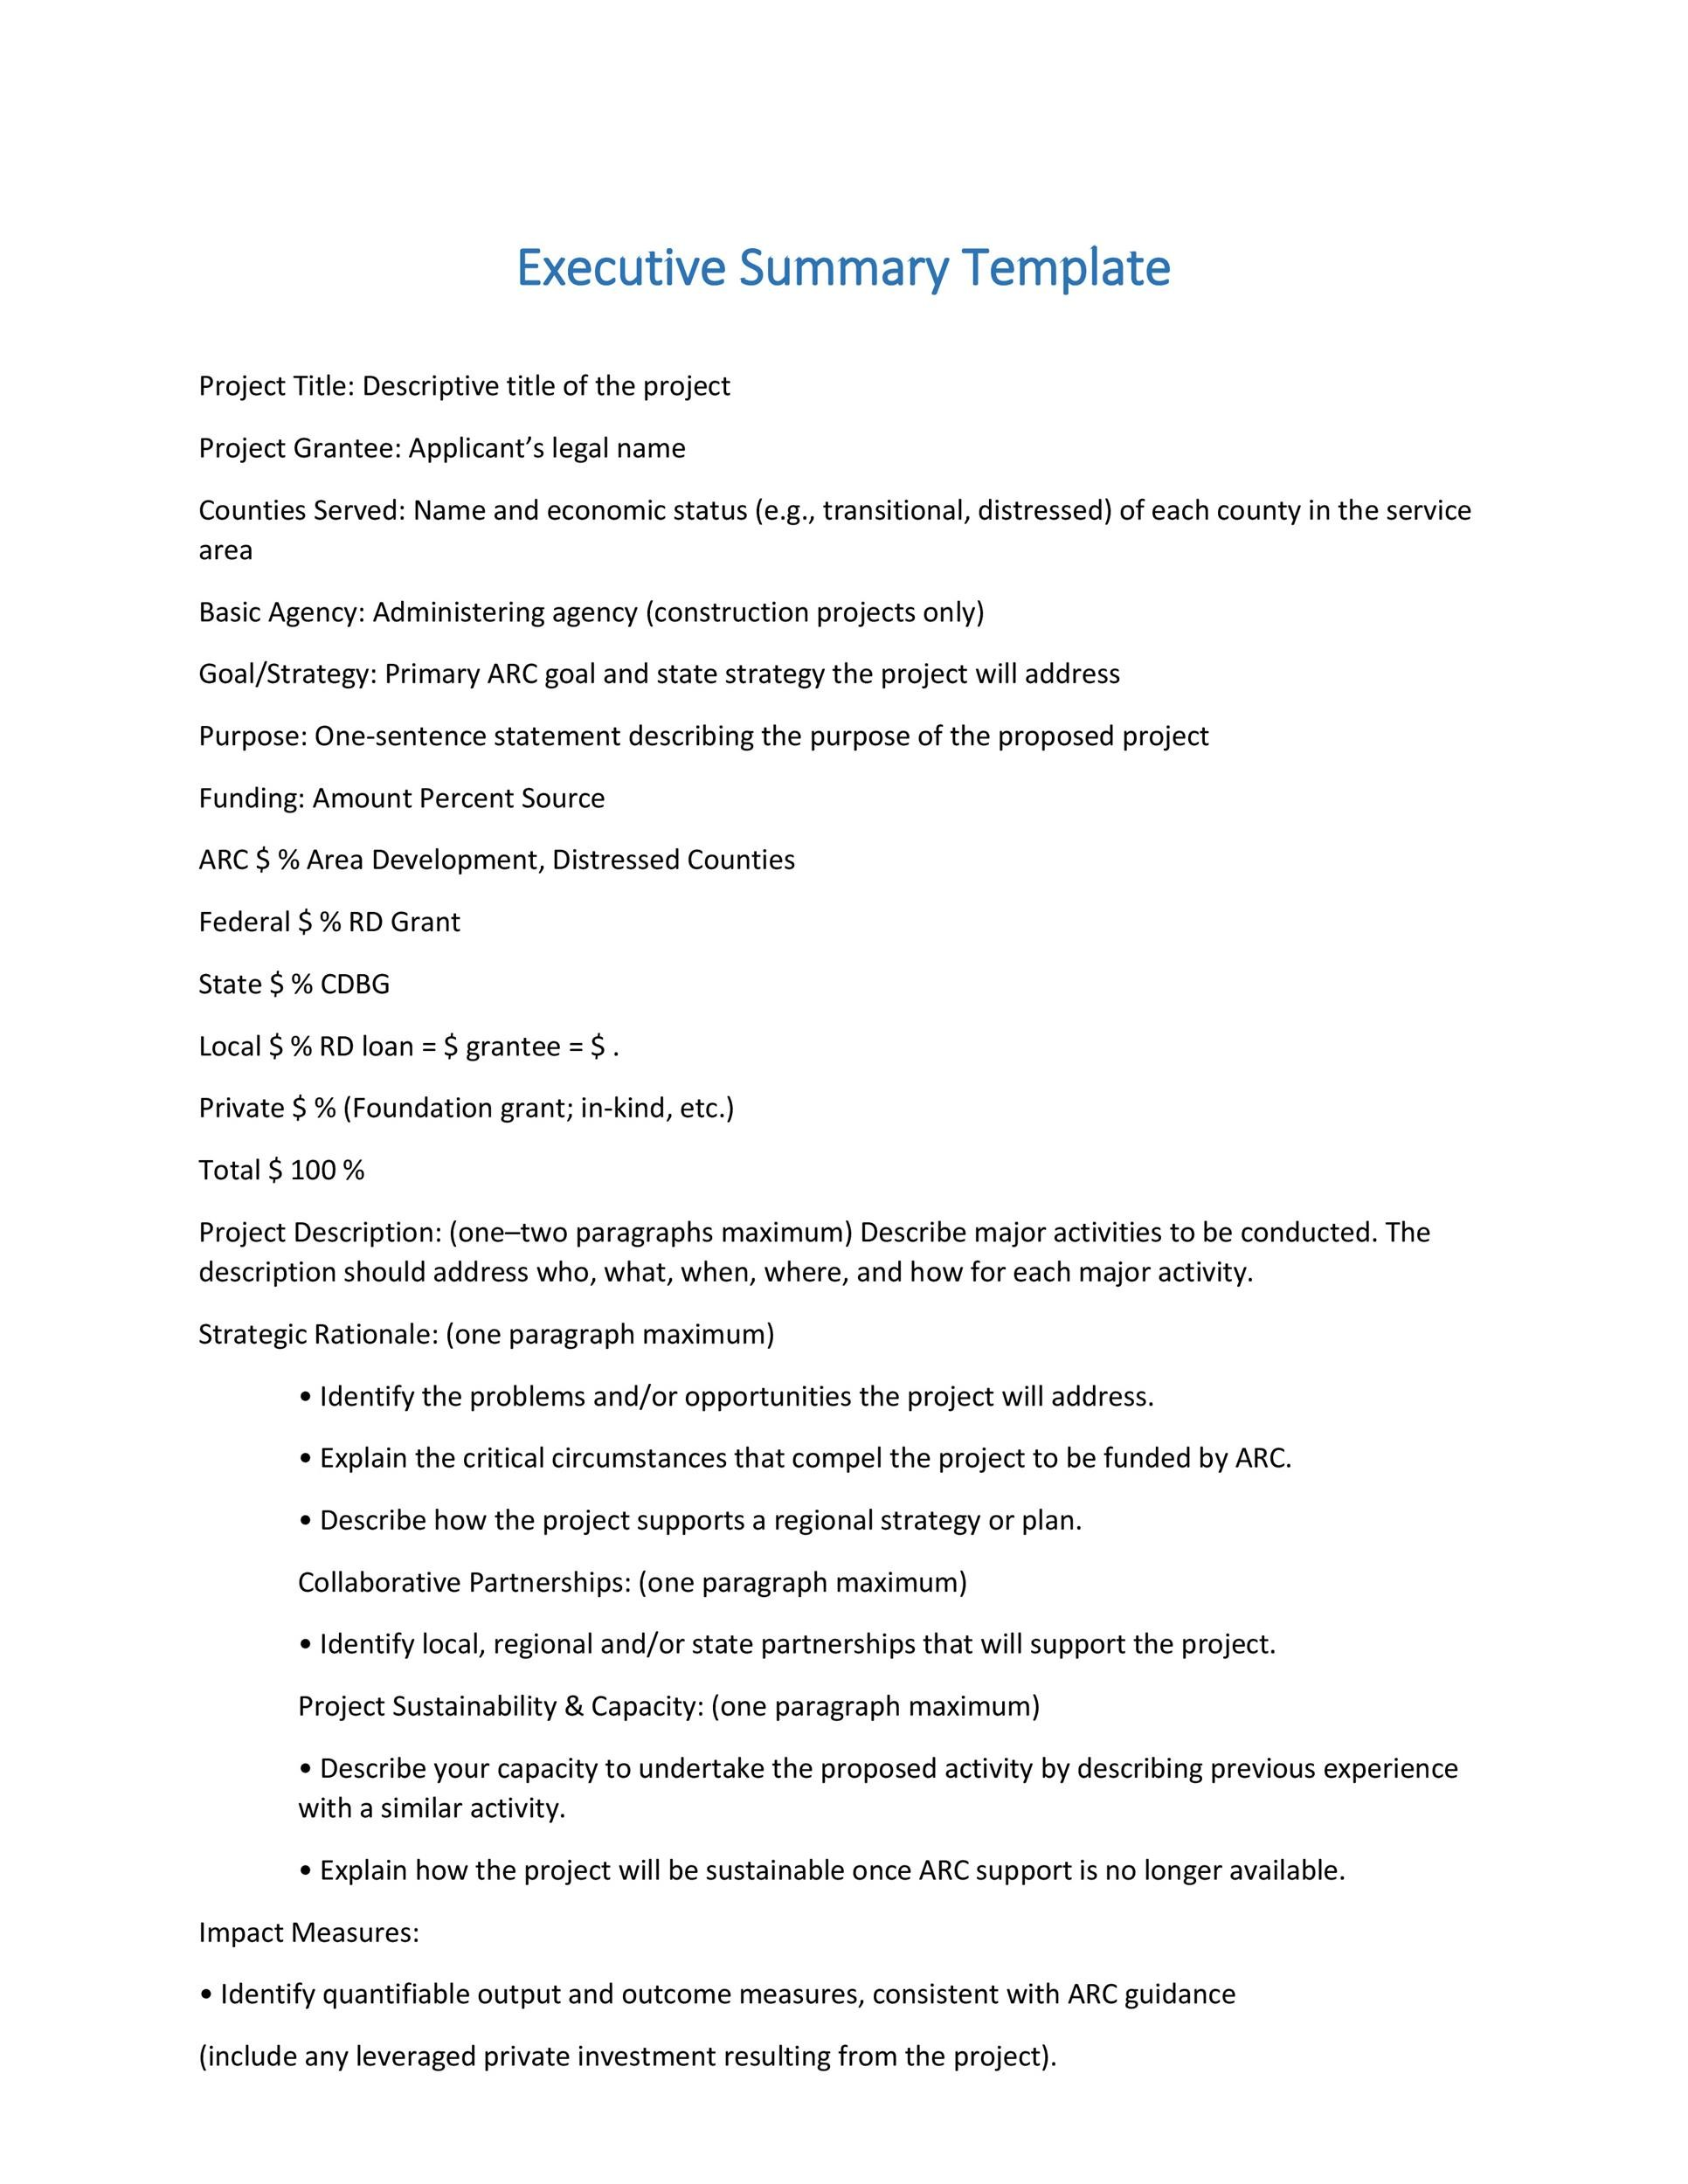 30+ Perfect Executive Summary Examples & Templates - Template Lab